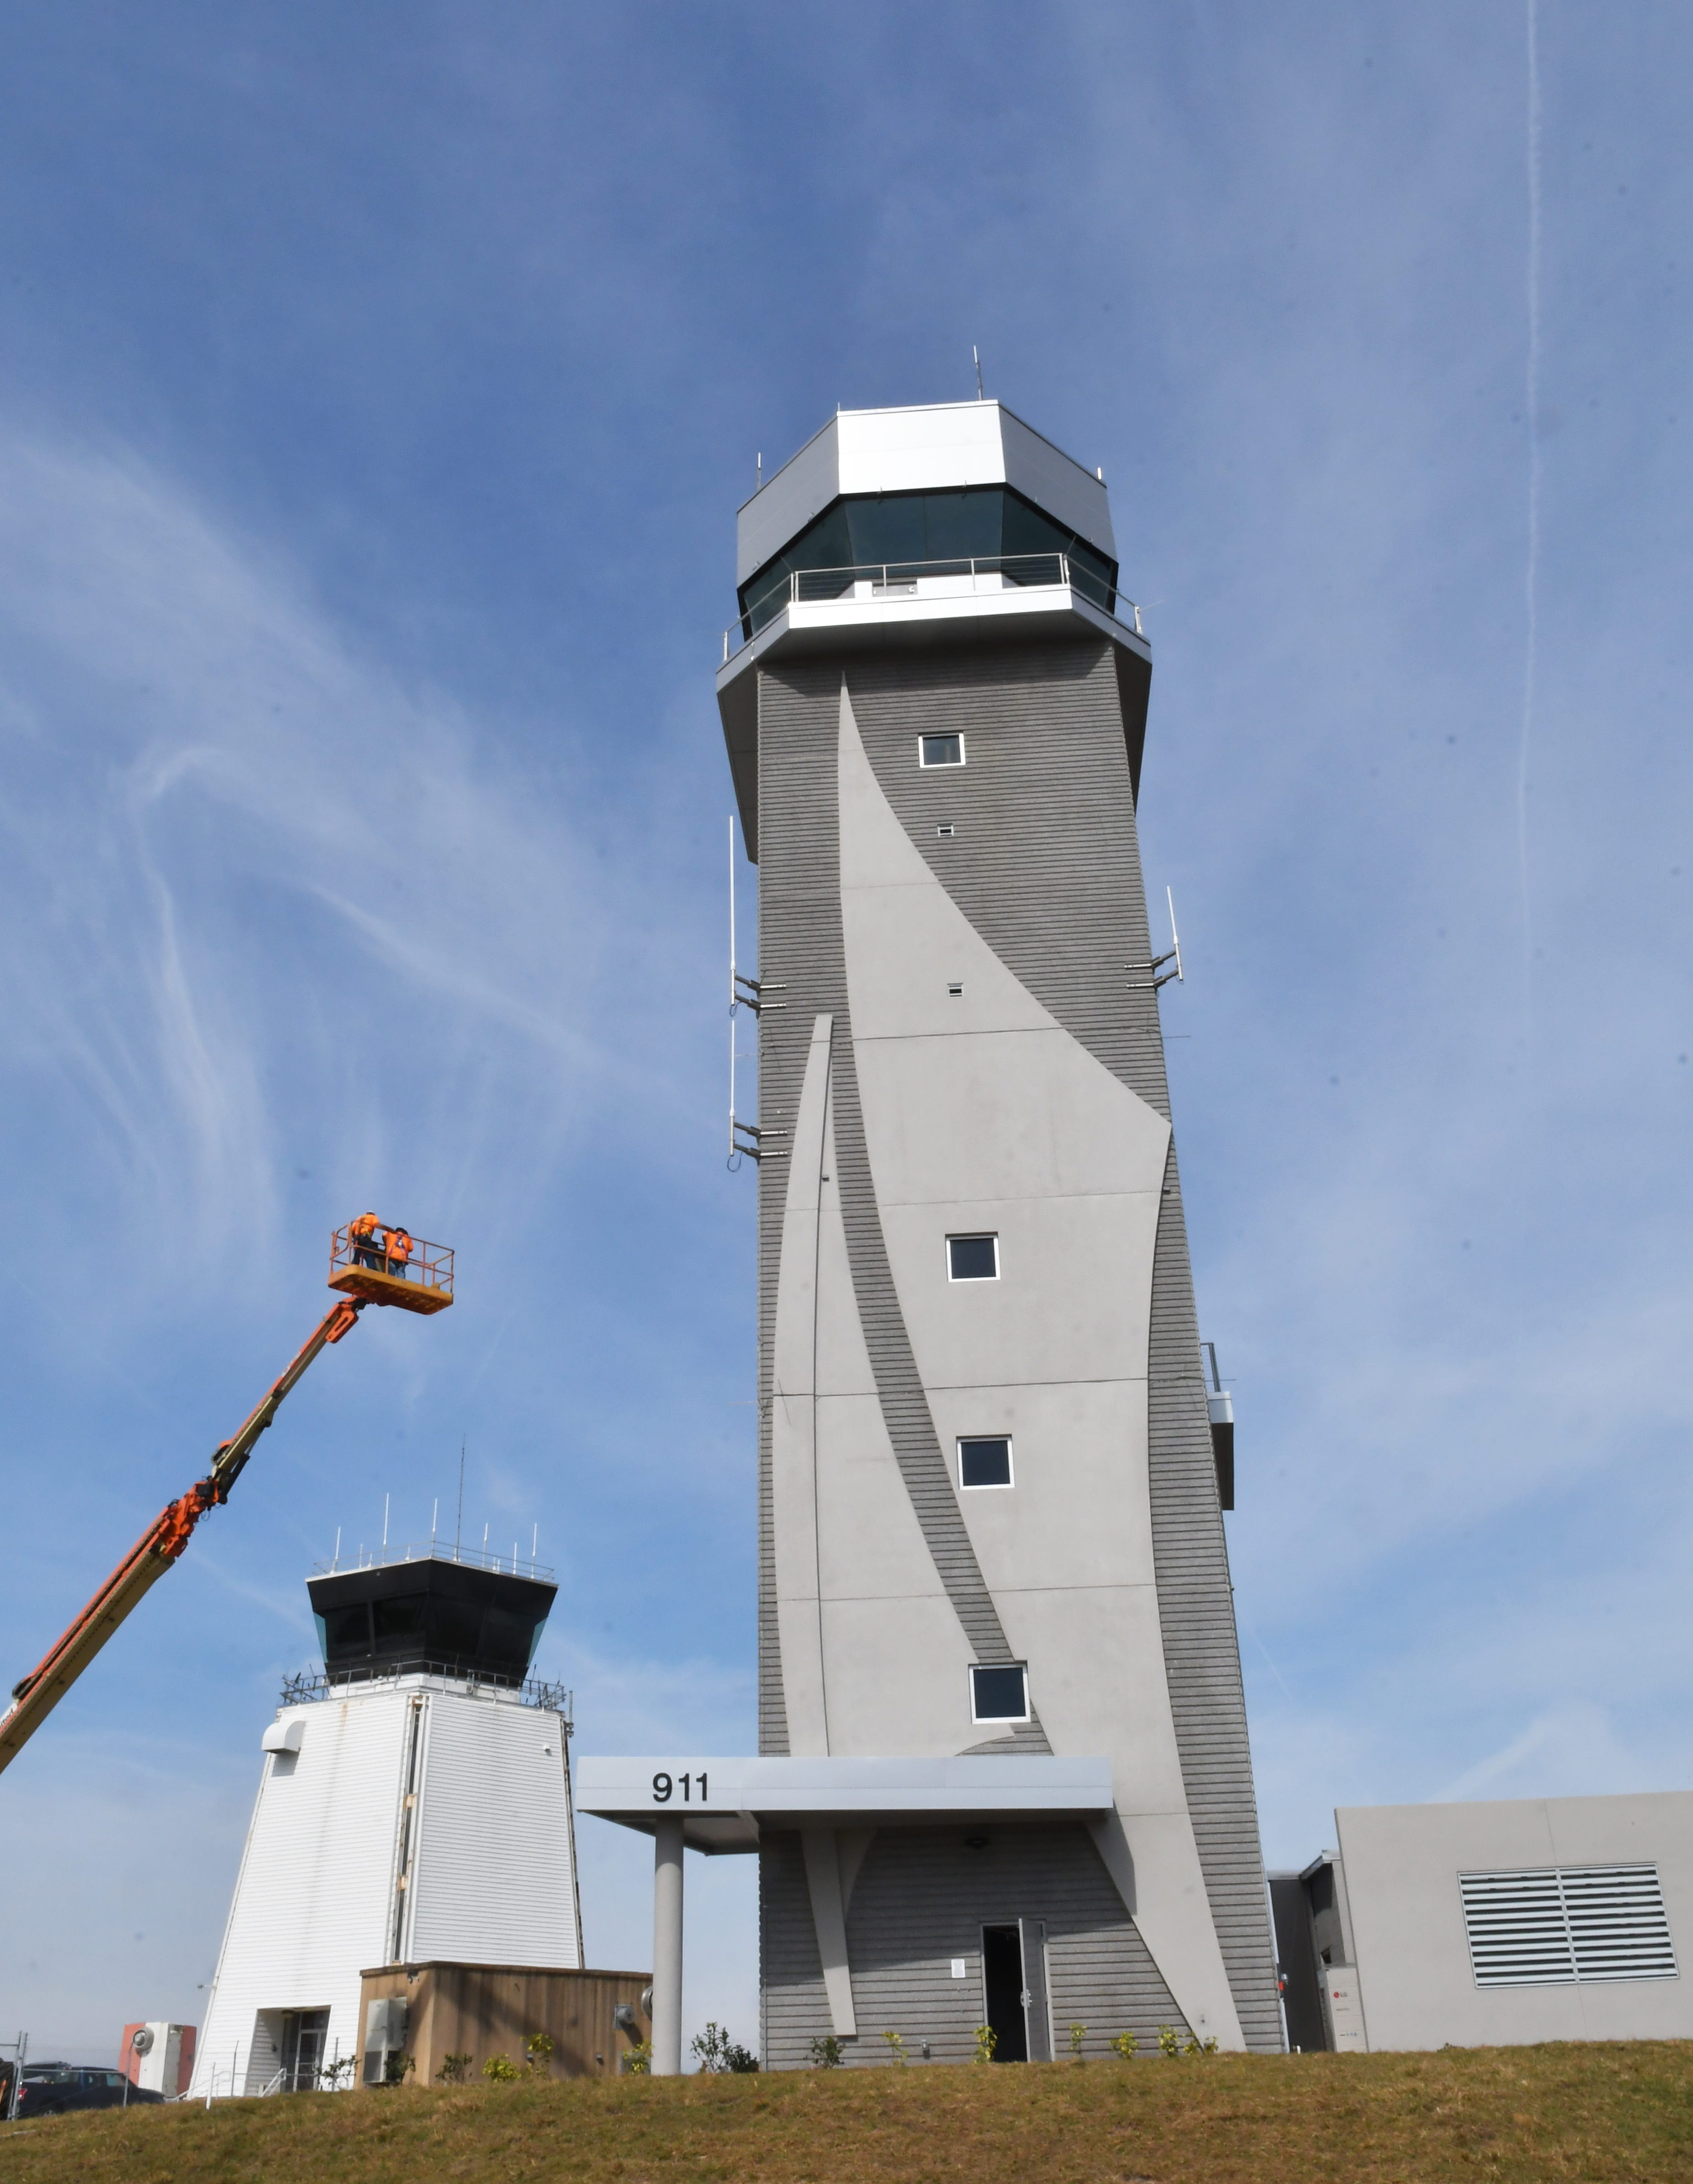 Air traffic control tower & Tower lighting event at Orlando Melbourne International Airport